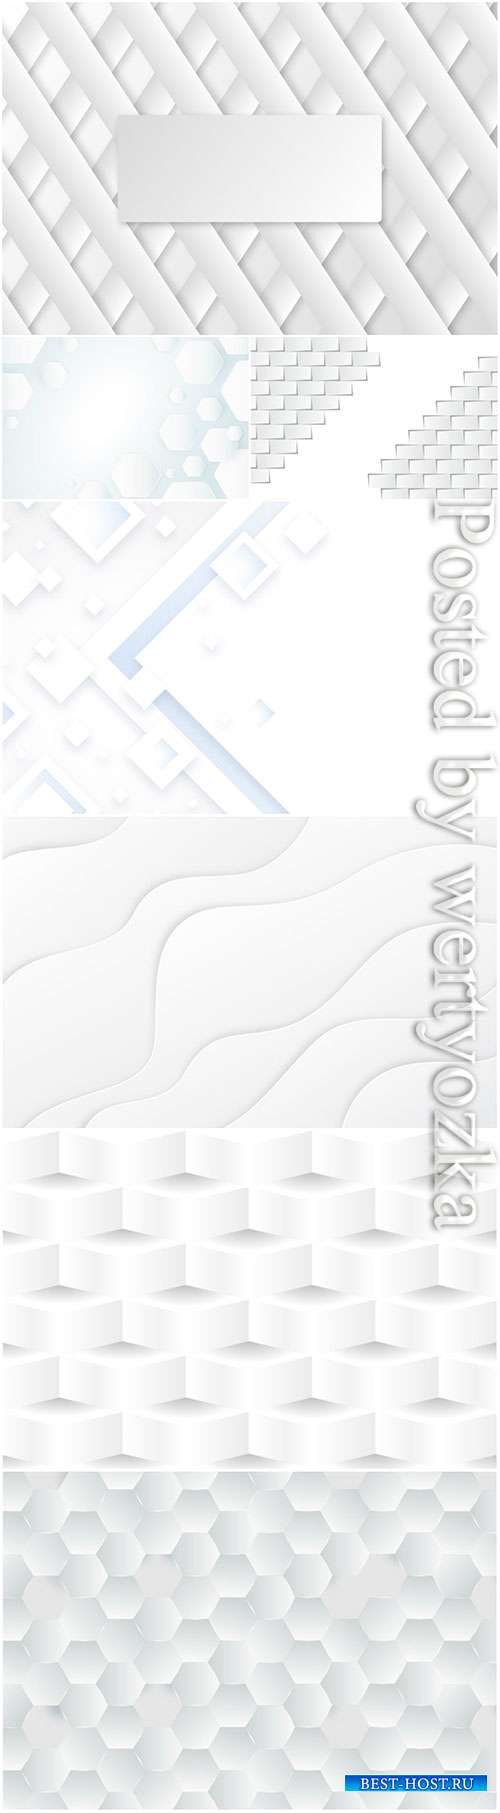 3d background with white abstract vector elements